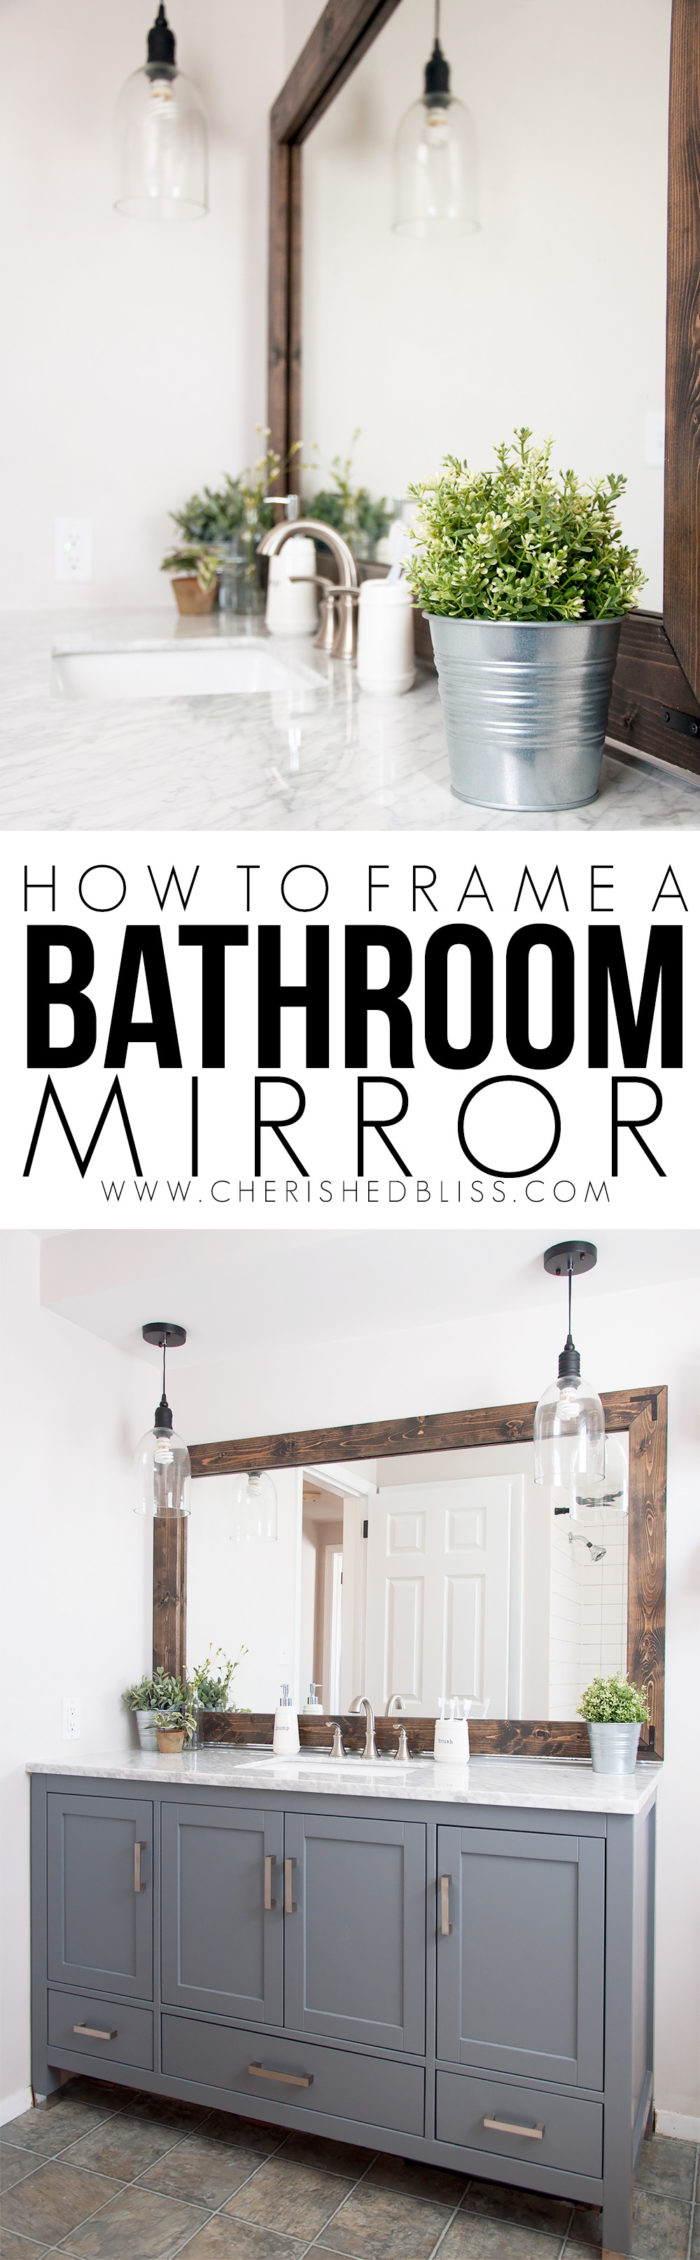 How to frame bathroom mirrors - Improve The Value Of Your Bathroom With This Easy Tutorial On How To Frame A Bathroom